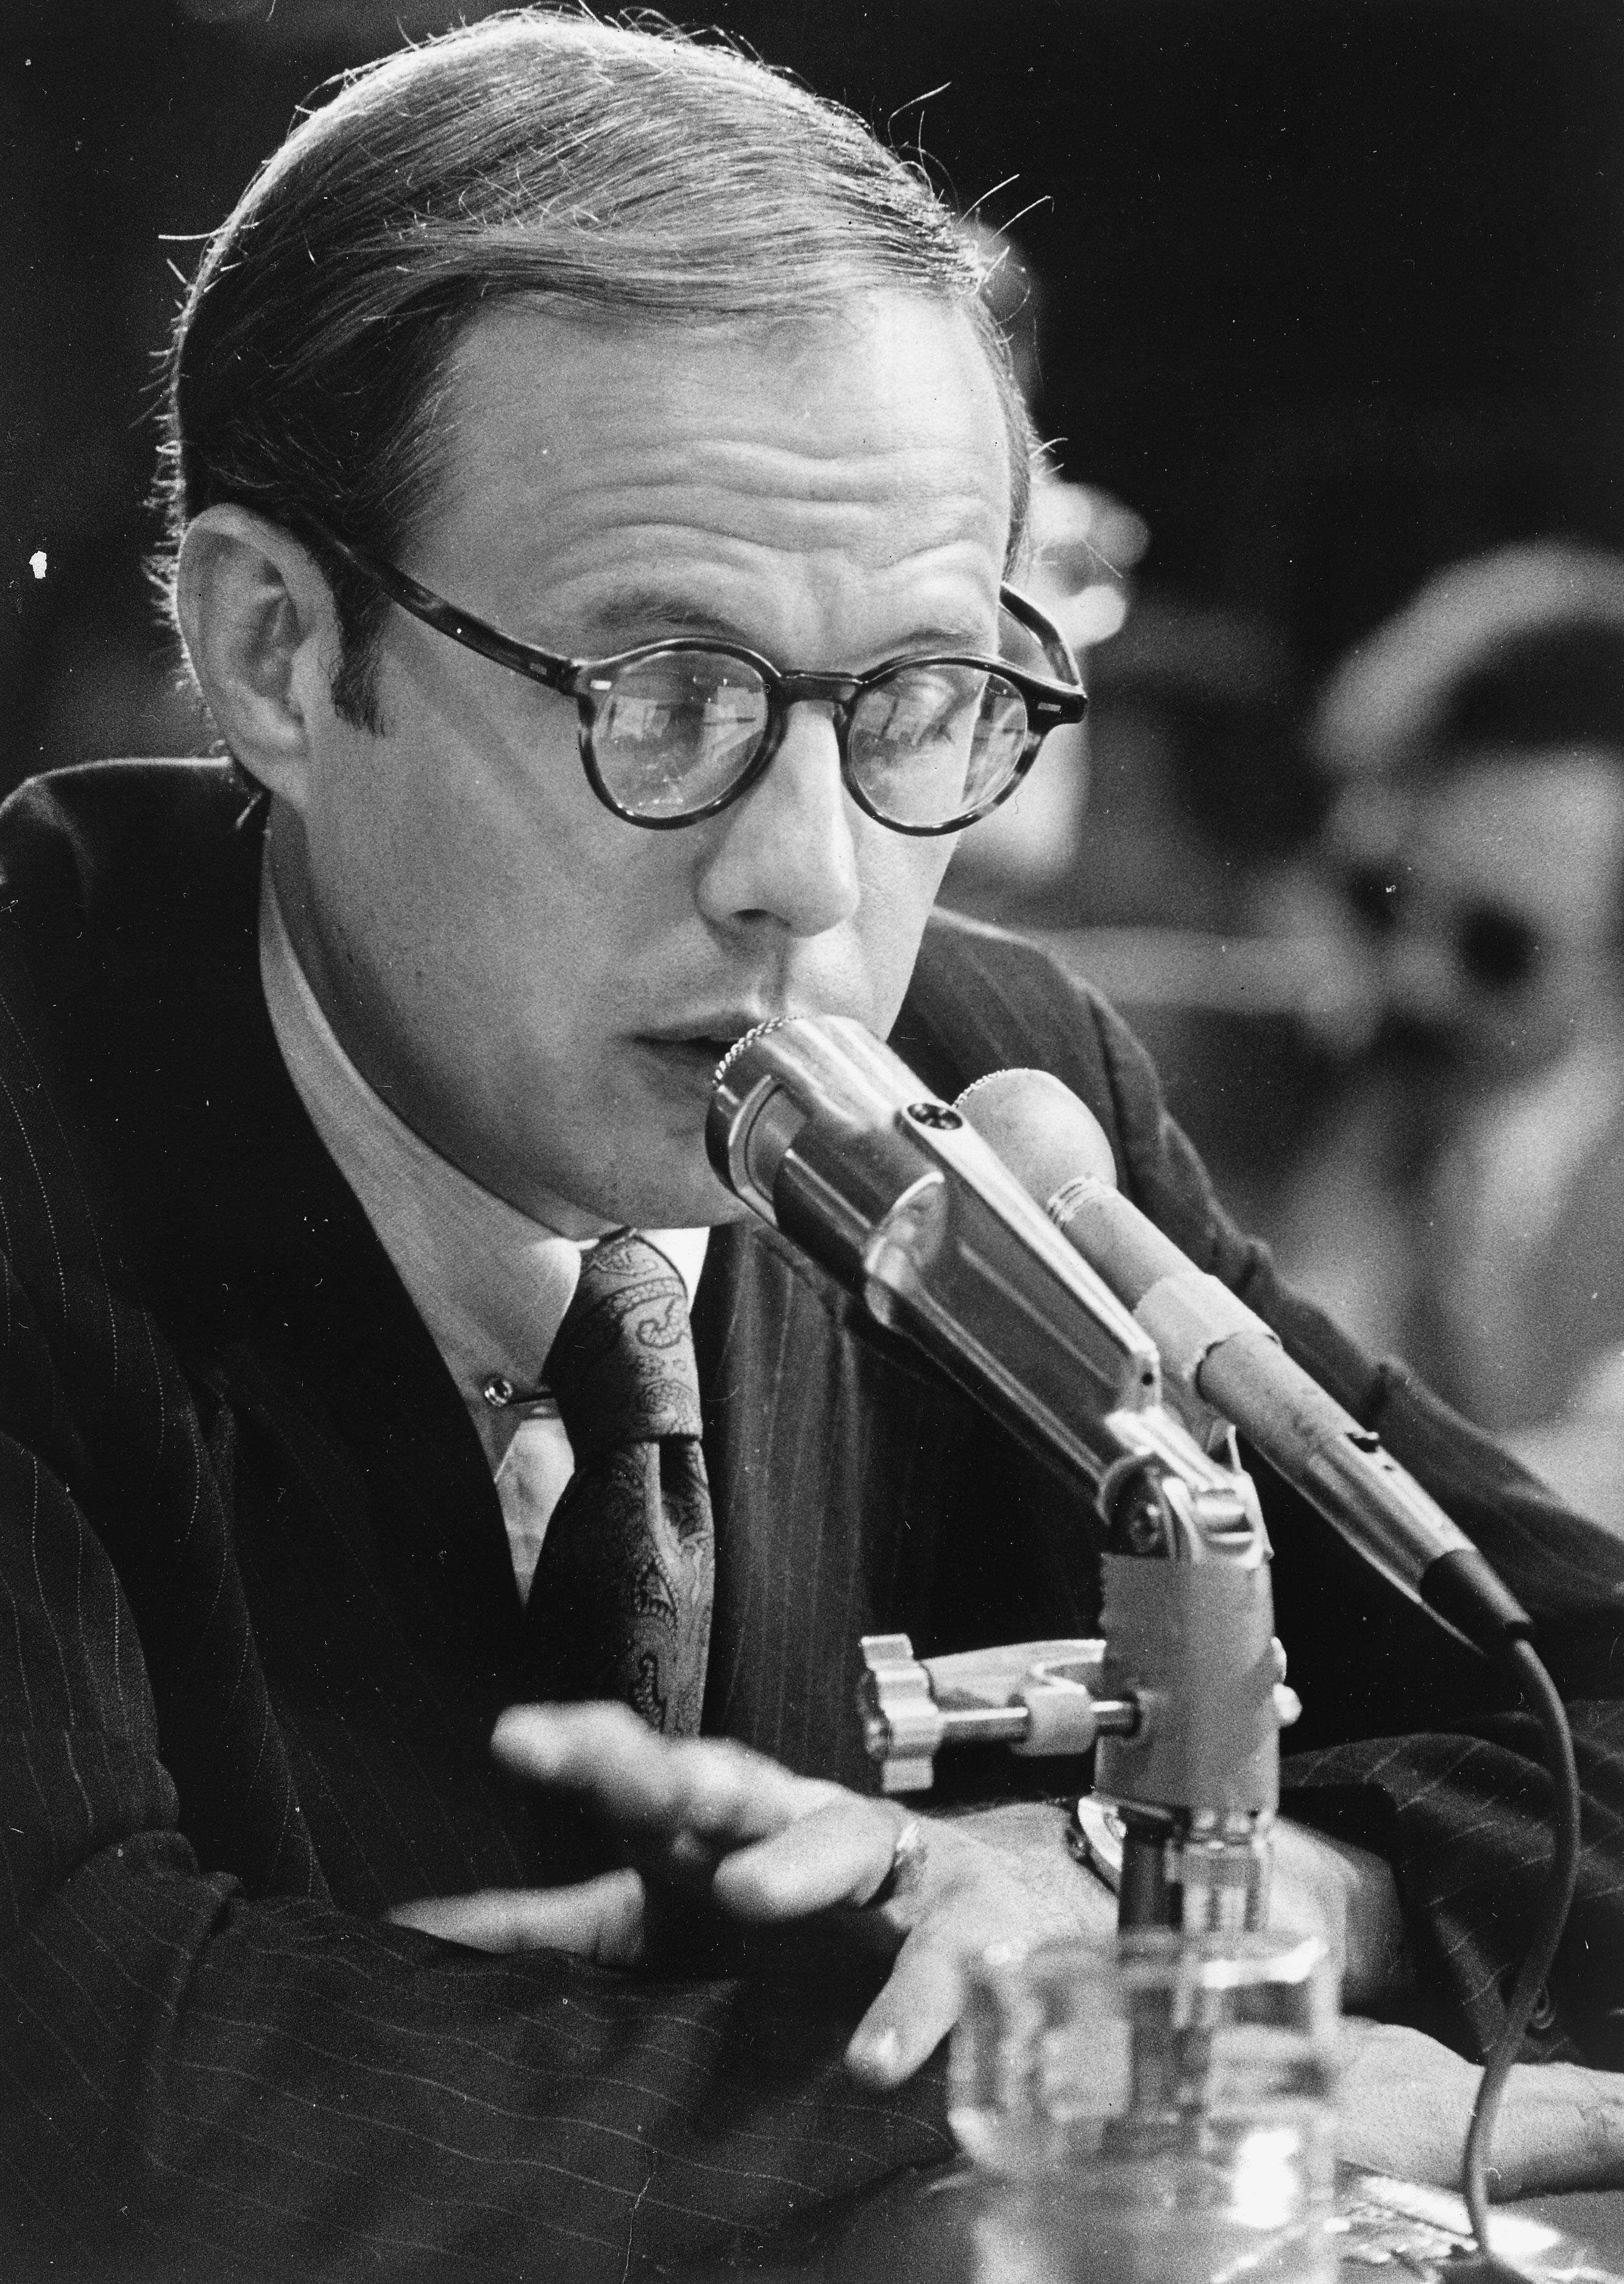 WASHINGTON, DC - JUNE 26:  Former Presidential aide John Dean III testifies for the second day before the Senate Watergate Investigating Committee. Photographed June 26, 1973 in Washington, DC. (Photo by James K.W. Atherton/The Washington Post via Getty Images)